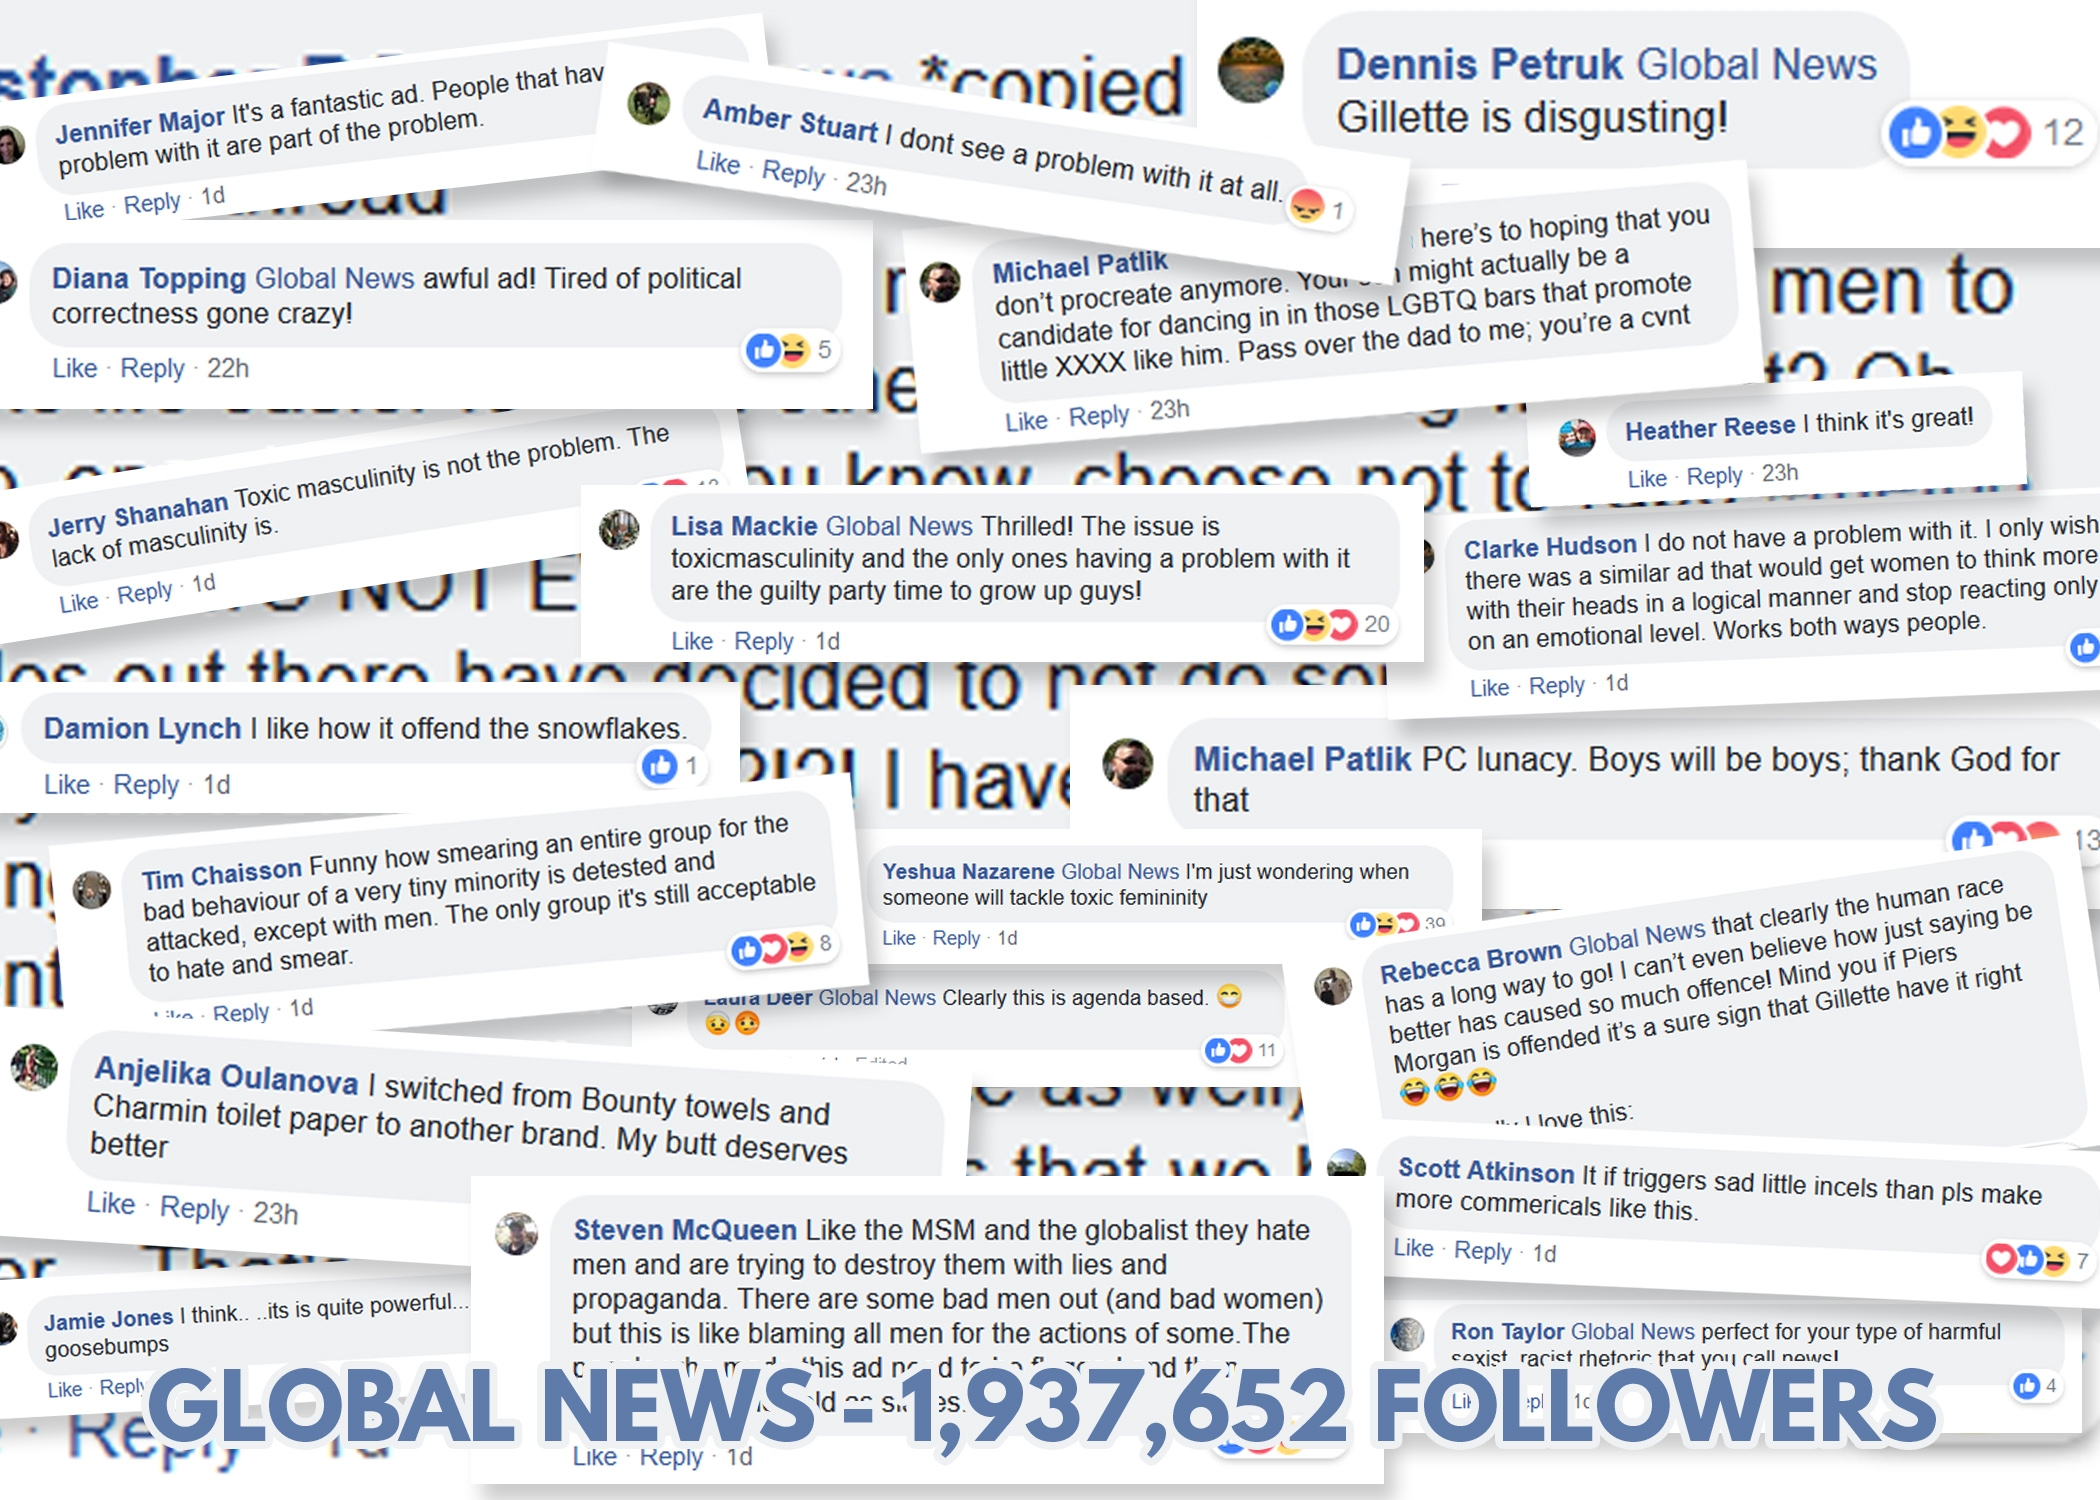 Global News (not to be confused with Global News London) facebook comments reach an audience of more than 1.9 million.